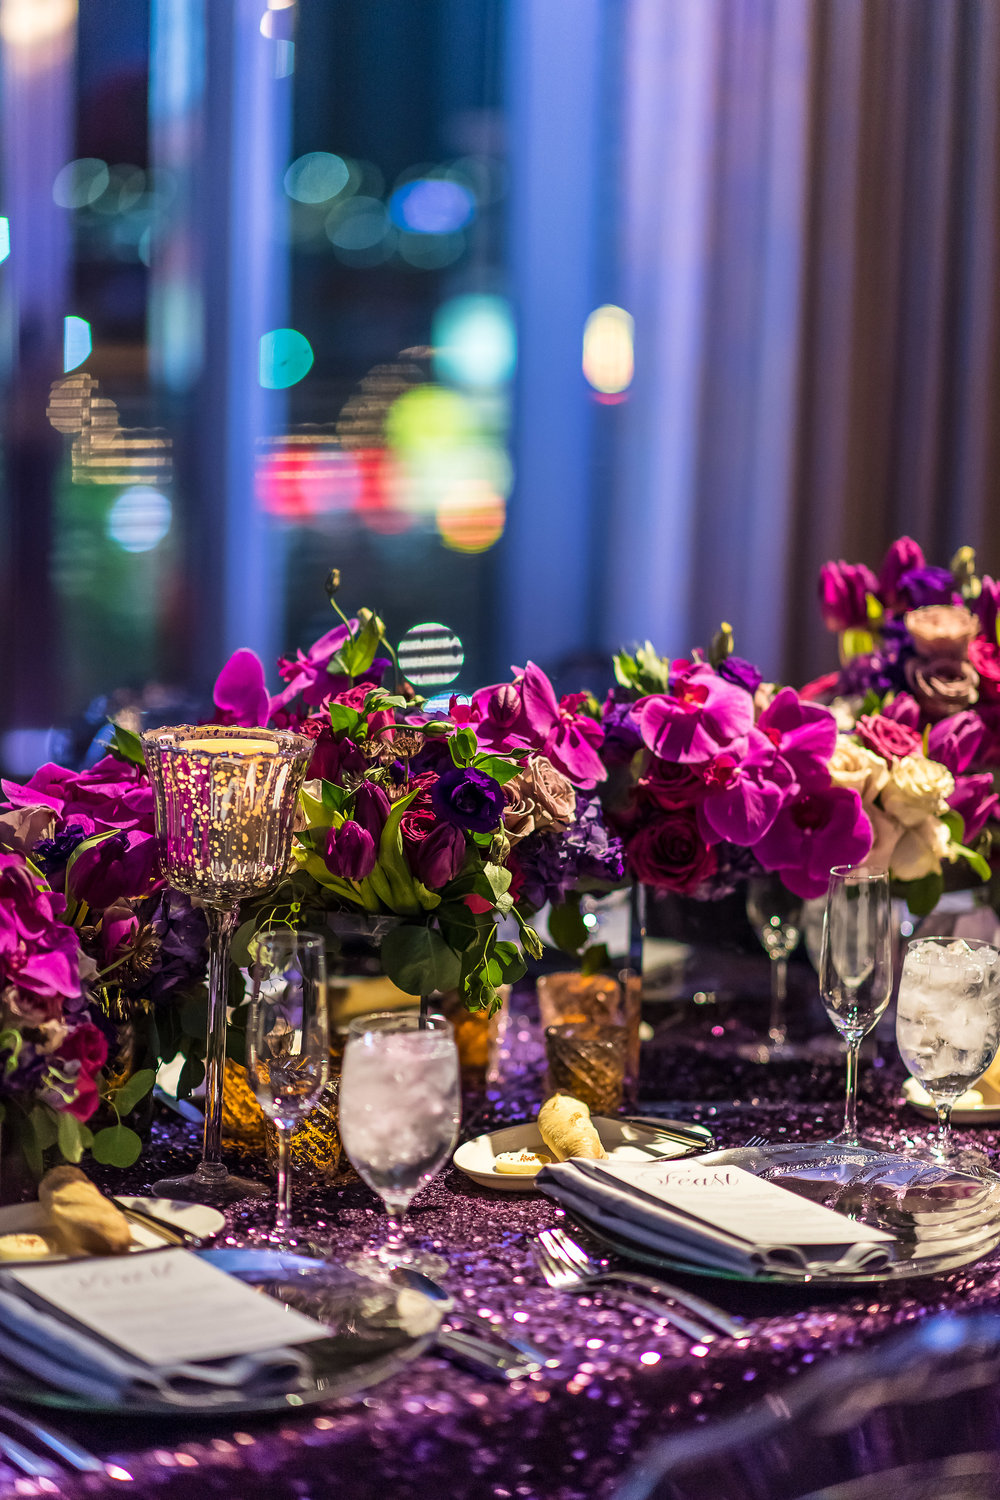 Long tables with low centerpieces with purple and pink flowers.  Wedding Planner:  Andrea Eppolito Events  |   Photography  Brian Leahy   |  Videography  HOO Films   |  Venue & Catering:  Mandarin Oriental  / Waldorf Astoria |  Floral & Decor:  Destinations by Design    |  Lighting:  LED Unplugged  |  Music:  DJ Breeze II   |  Hair & Make Up:  Amelia C & Co   |  Invitations by  Bliss & Bone   |  Menu and Escort Cards by  Meldeen